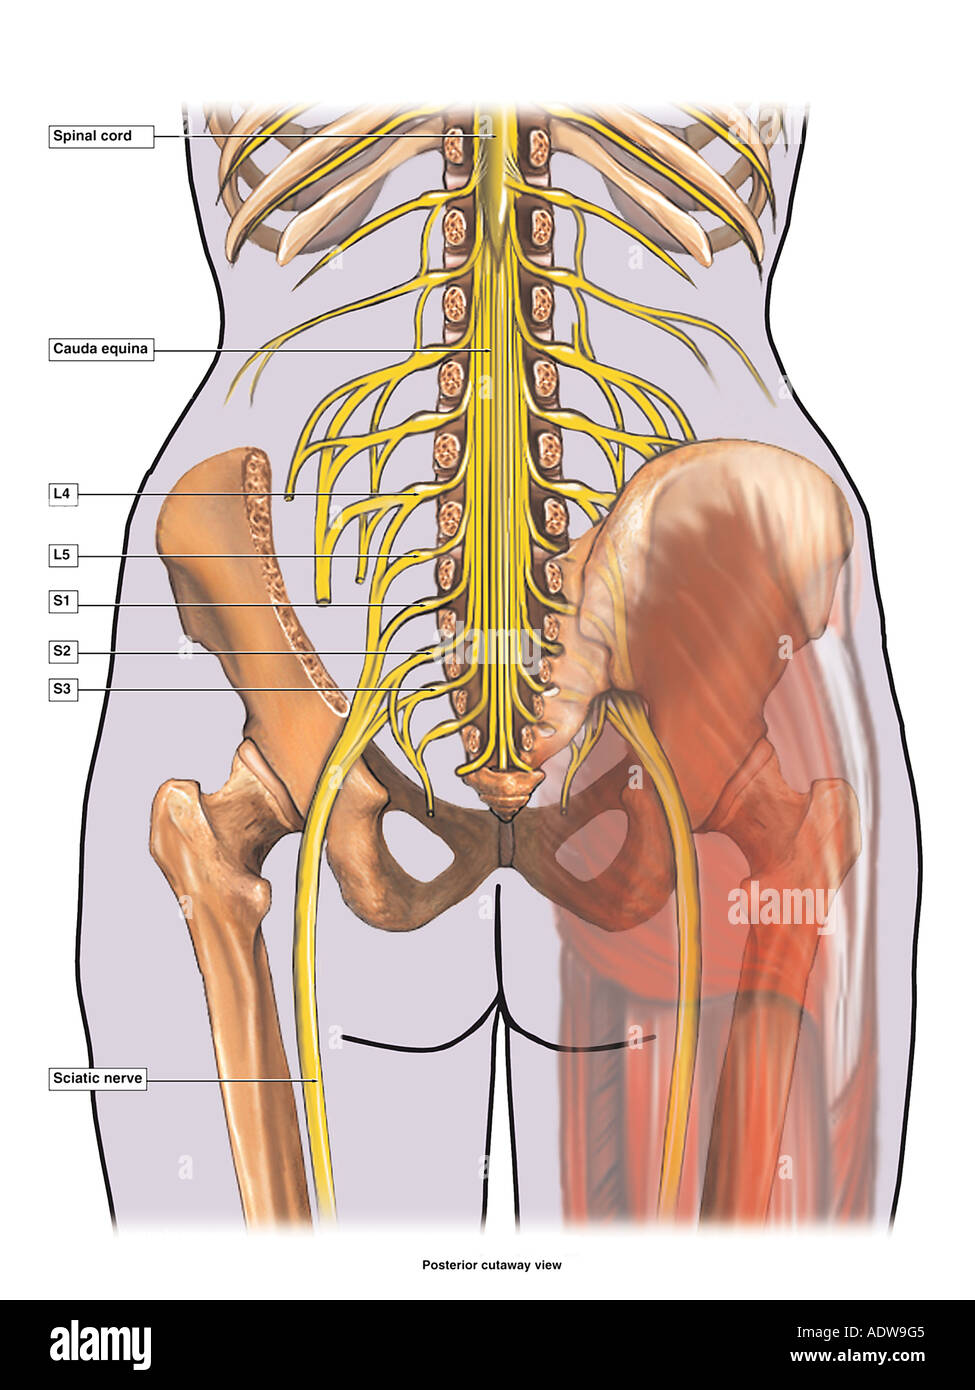 Anatomy of the Sciatic Nerve Stock Photo: 7712708 - Alamy